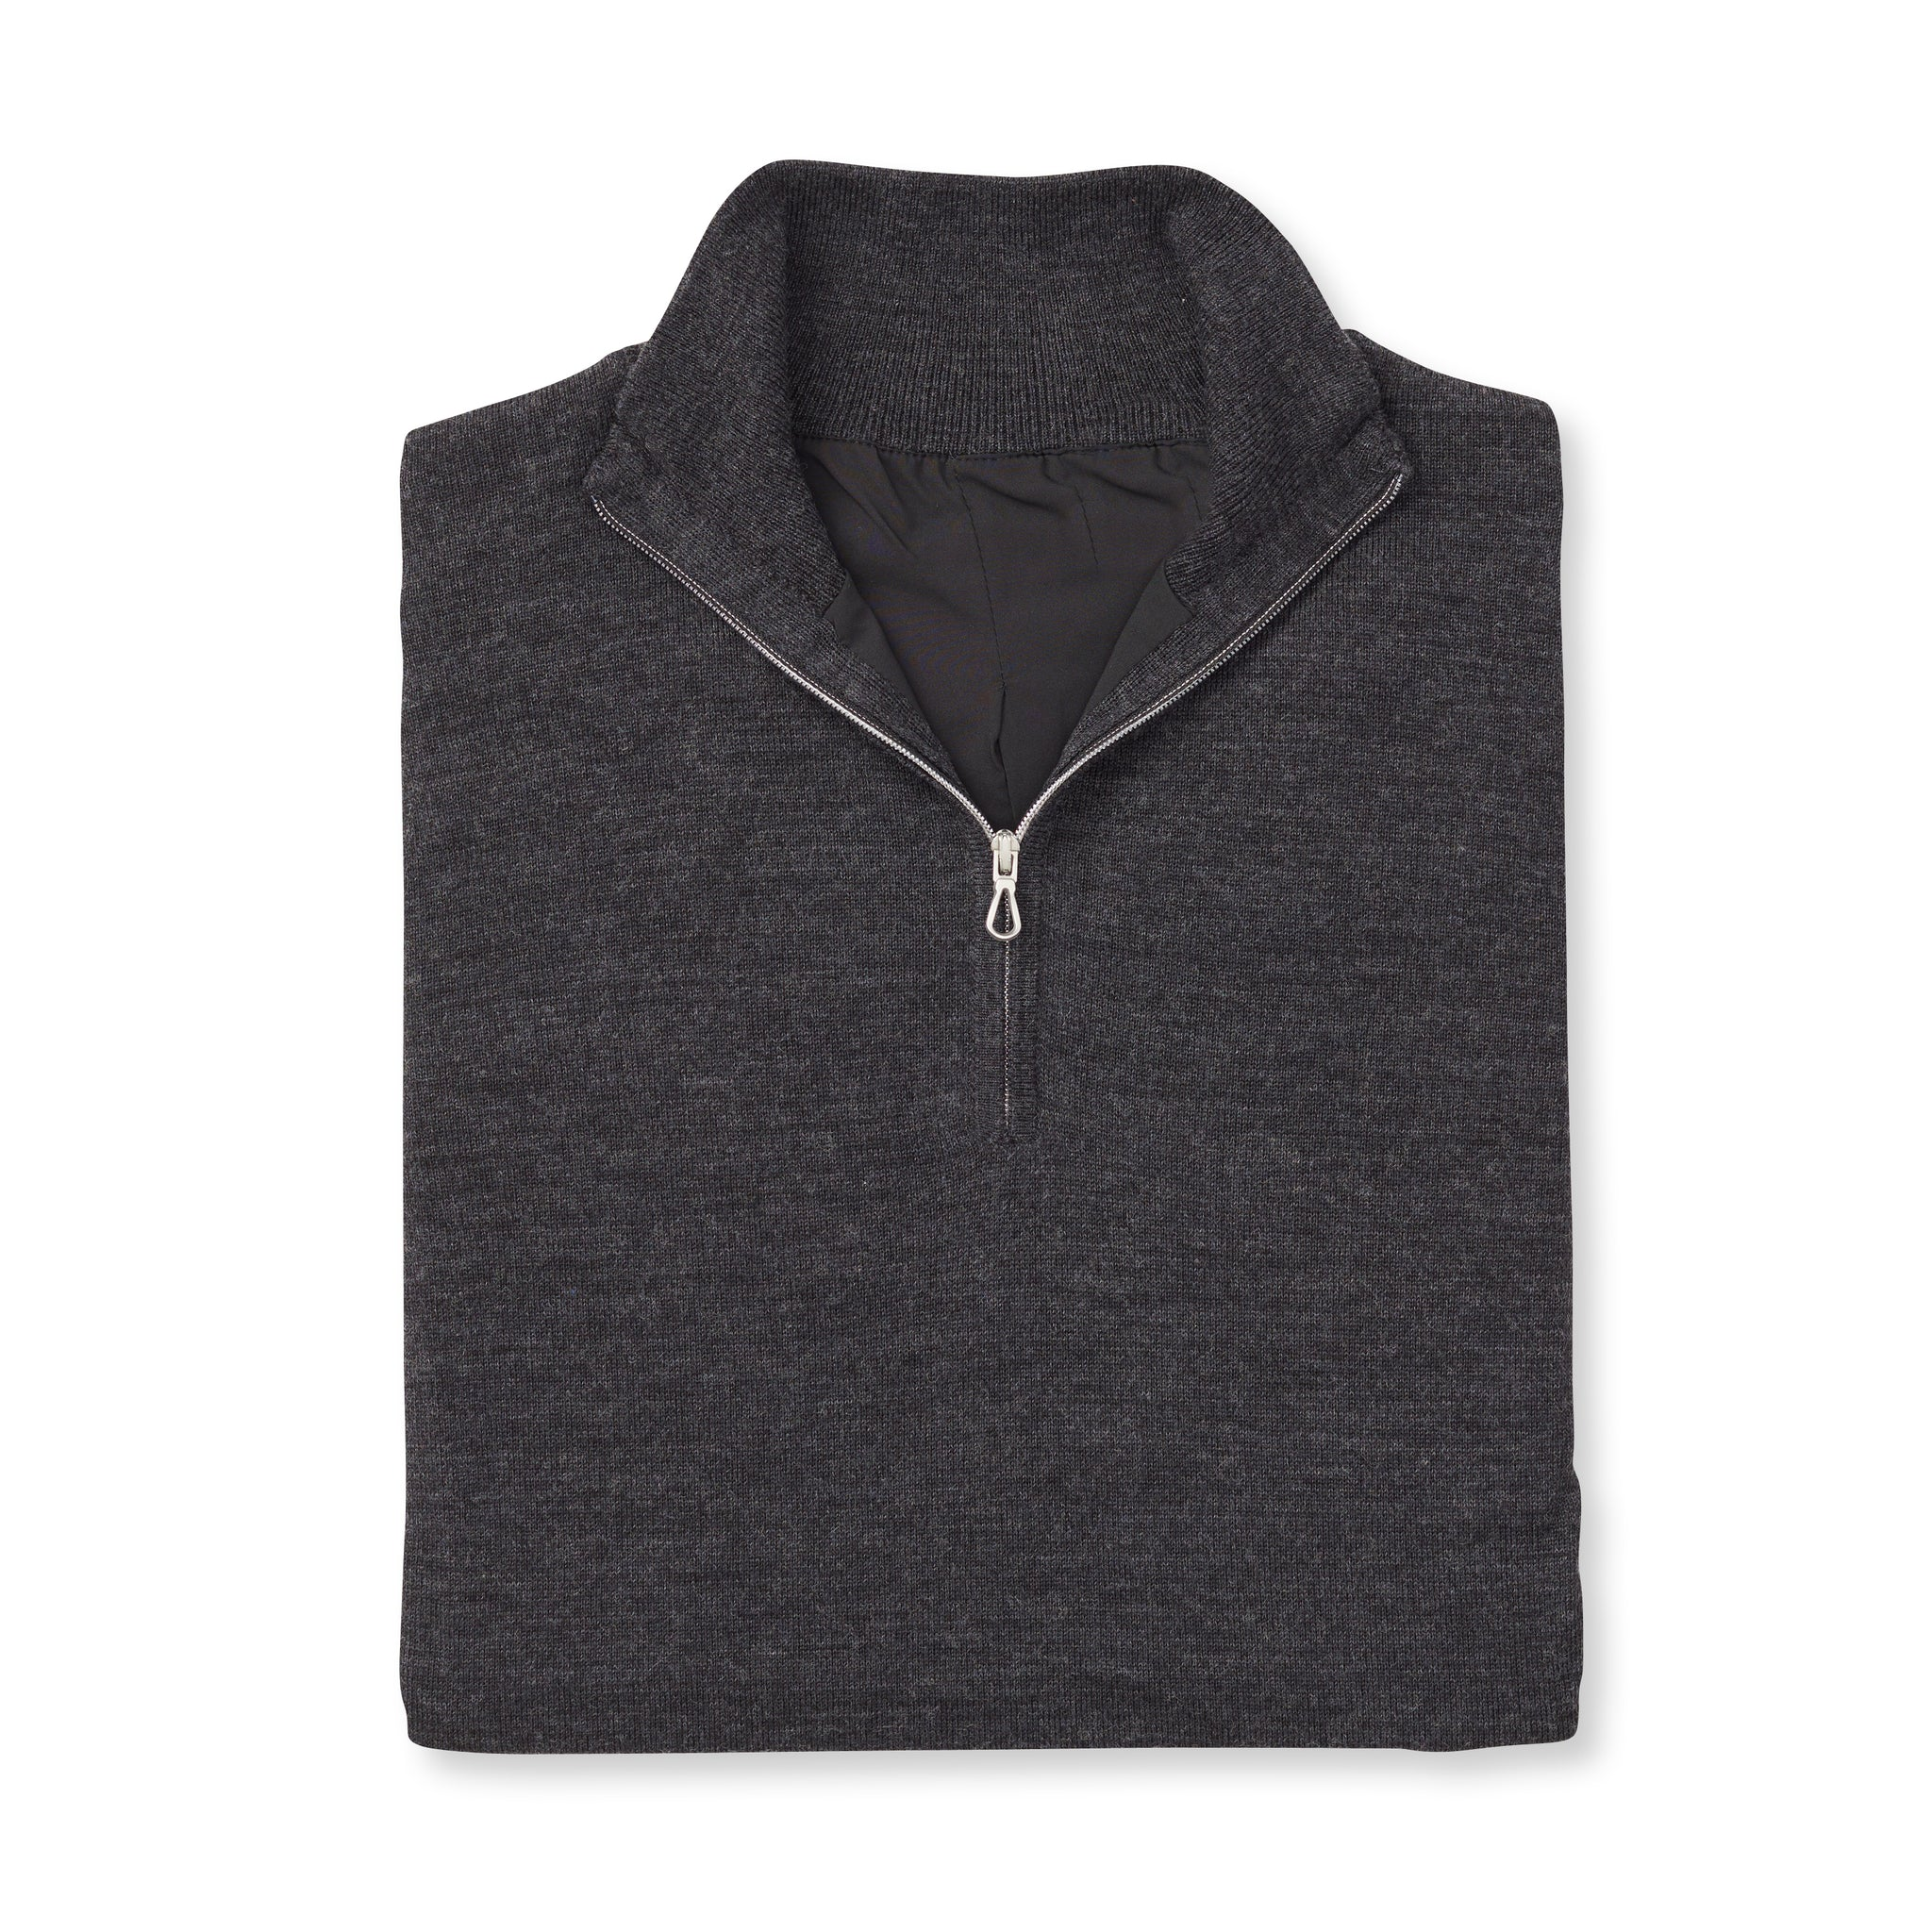 THE WOMEN'S CHITOWN MERINO HALF ZIP PULLOVER - Black Heather IS75708HLSW